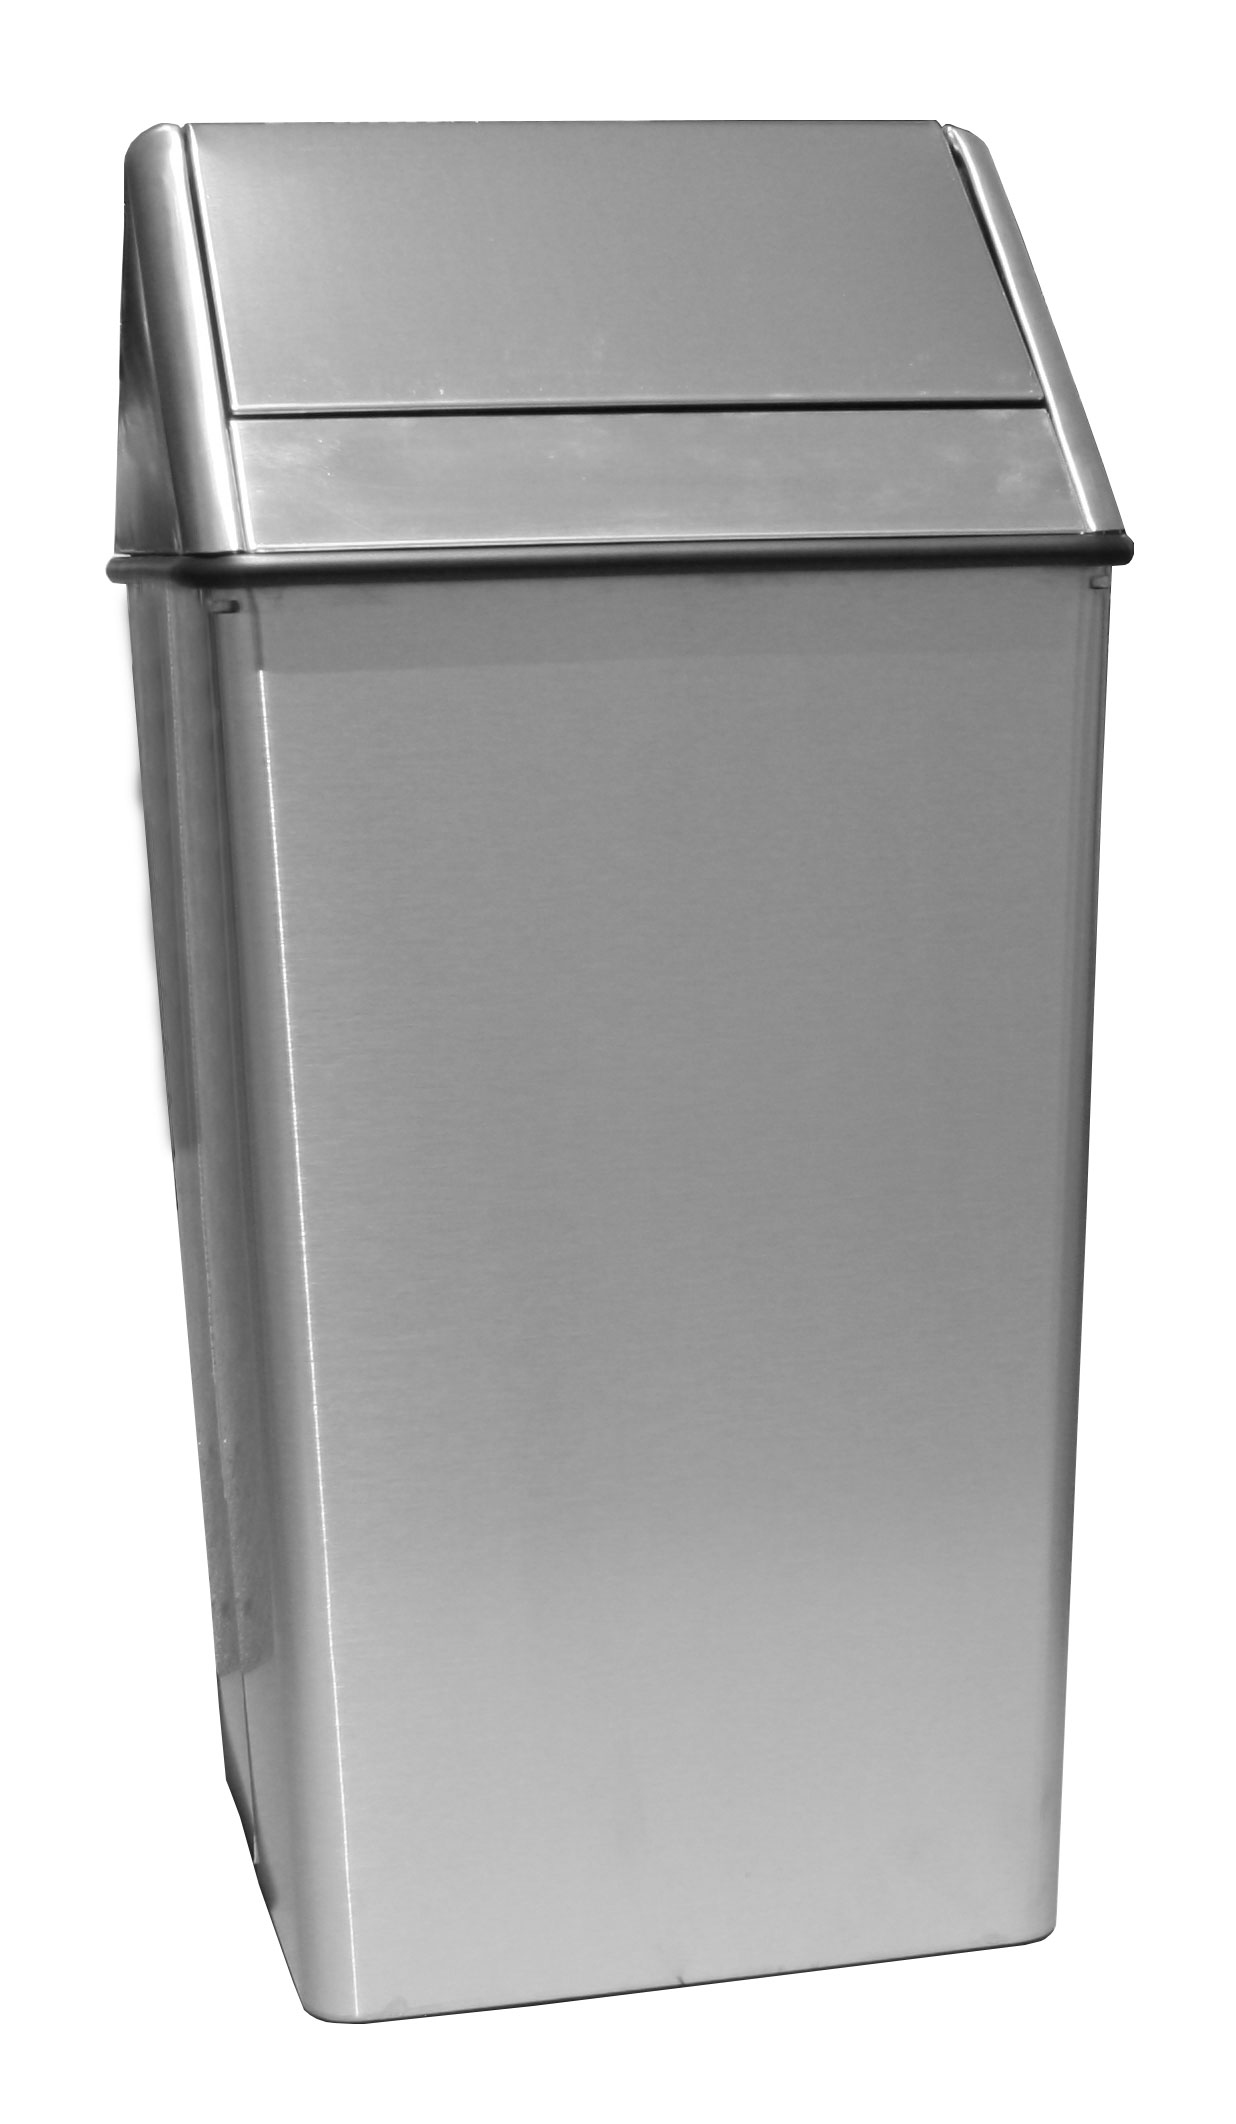 Witt Industries 1411HTSS 21-Gallon Indoor Trash Can w/ Square Hamper & Swing Top, Stainless